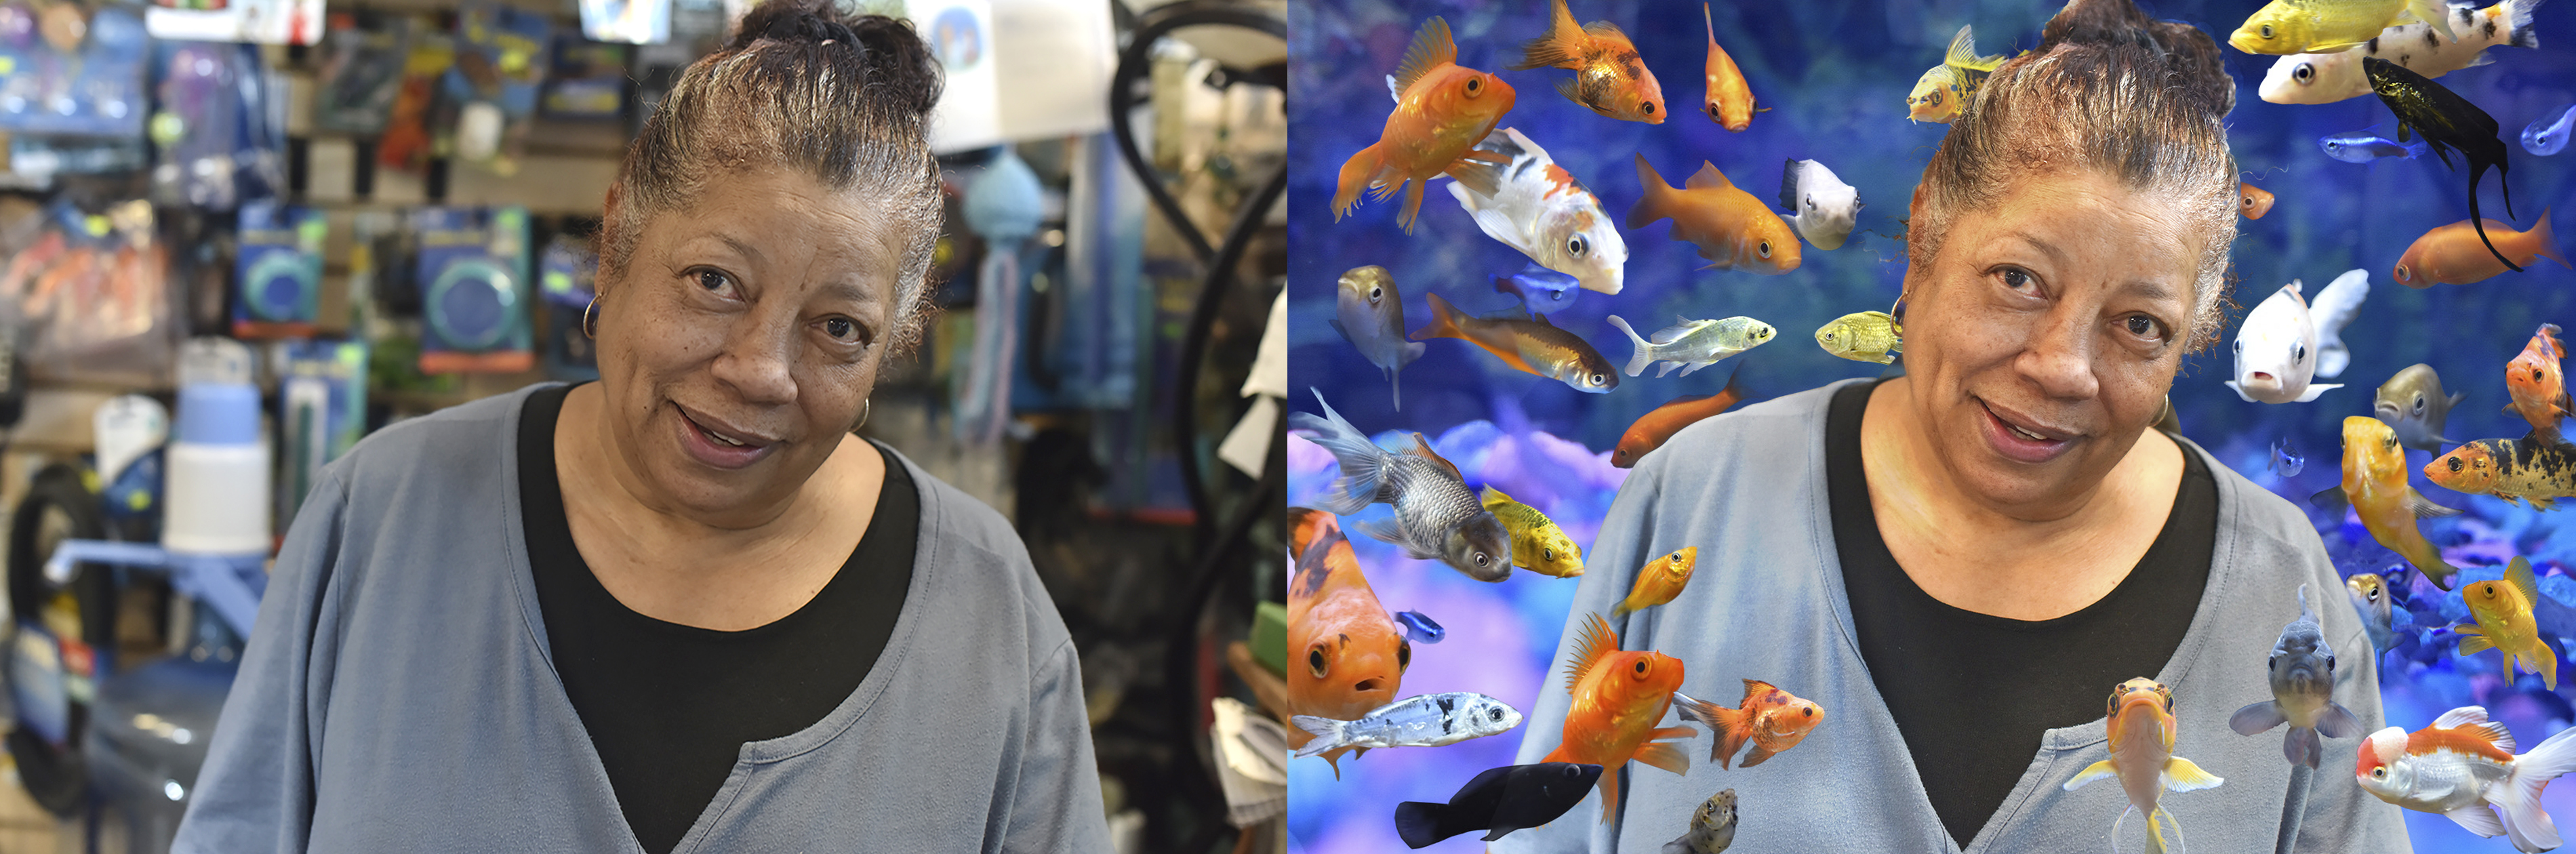 Photo manipulation of Marla Yasutake with fish